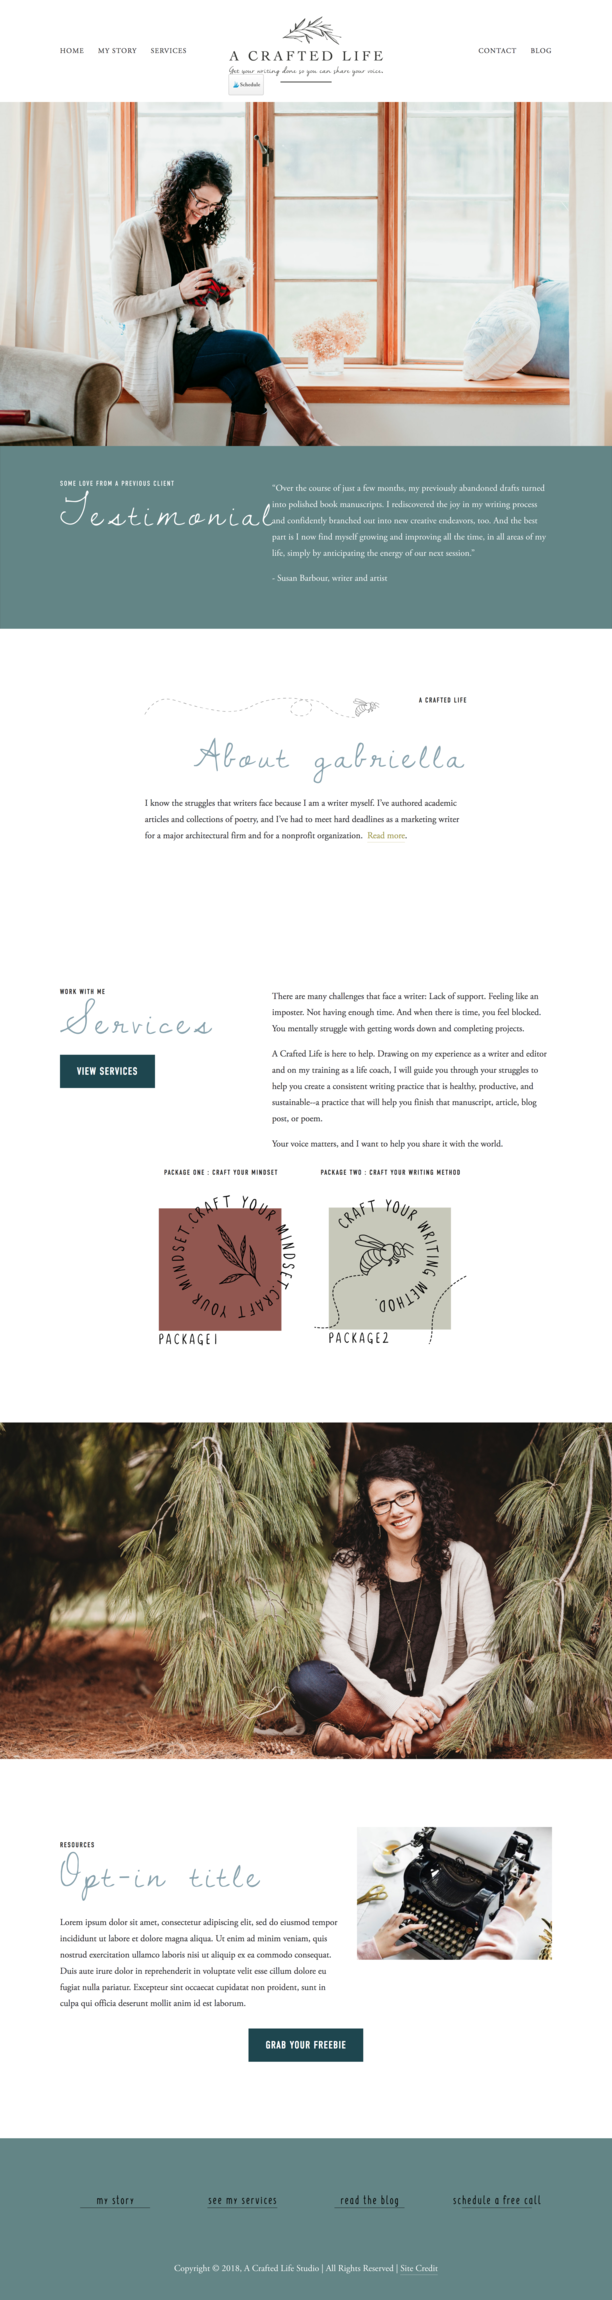 A crafted life web design by Maria Wandiba